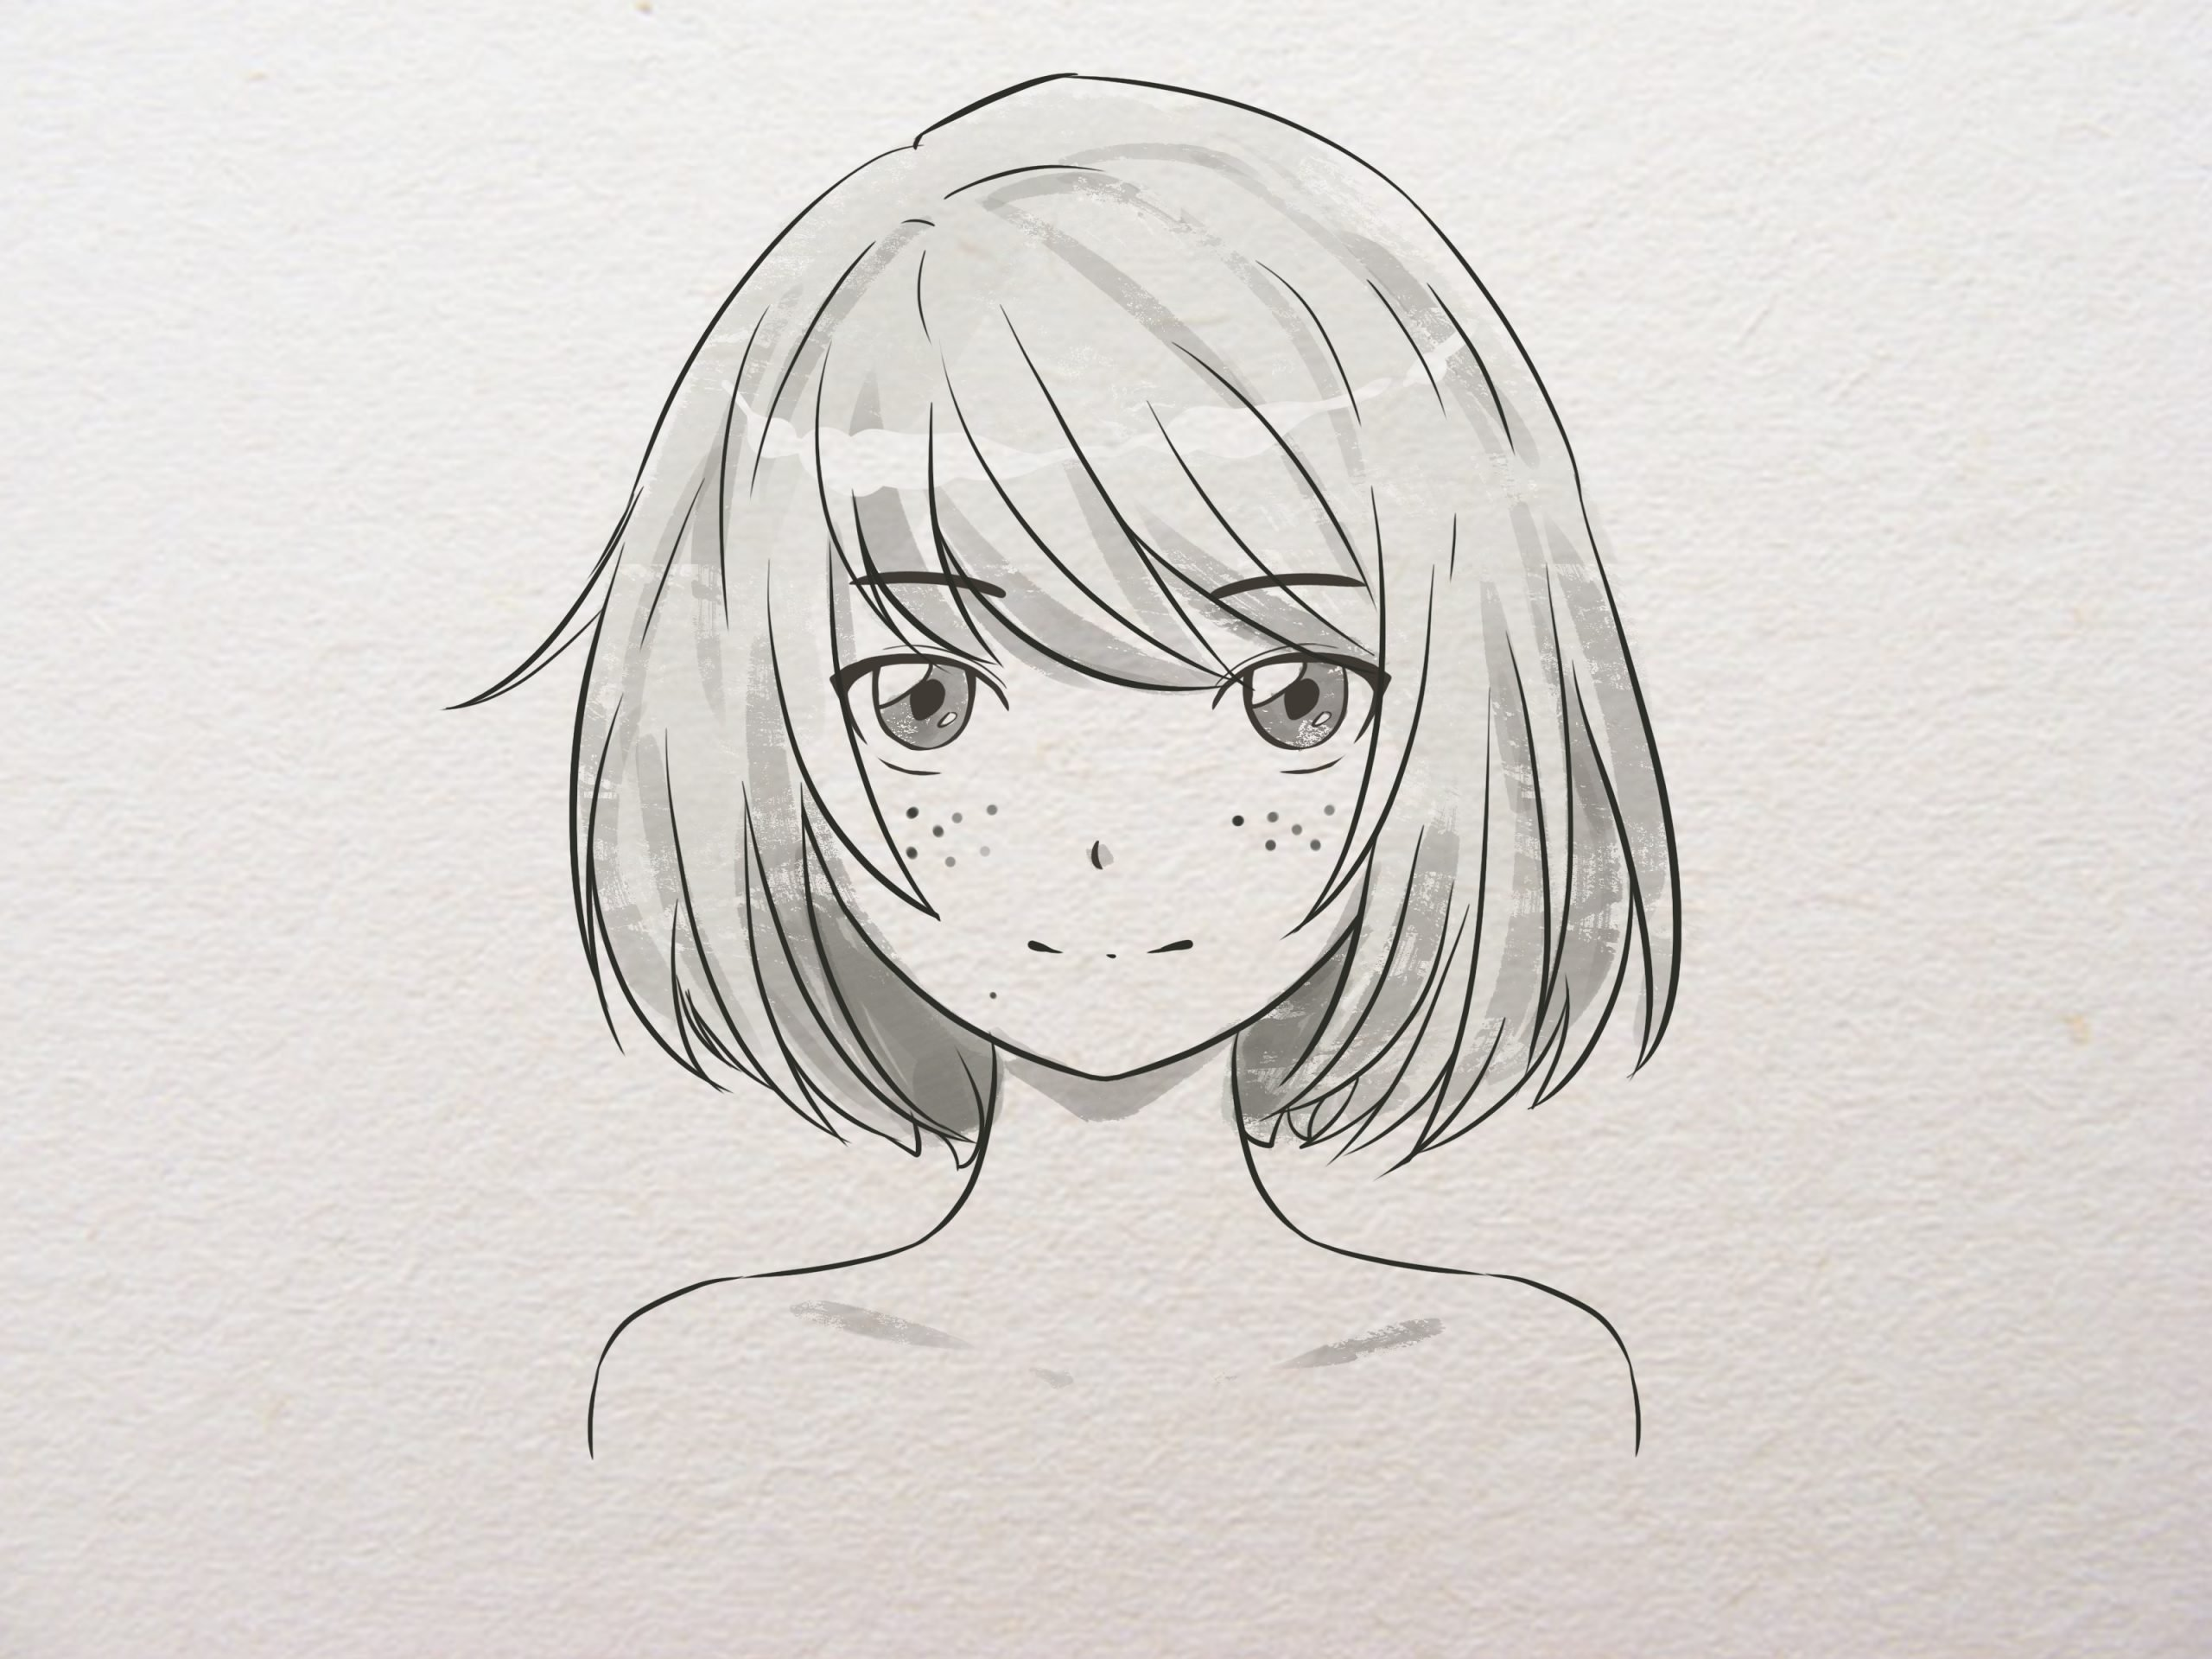 How to Draw Anime or Manga Faces: 15 Steps (with Pictures)